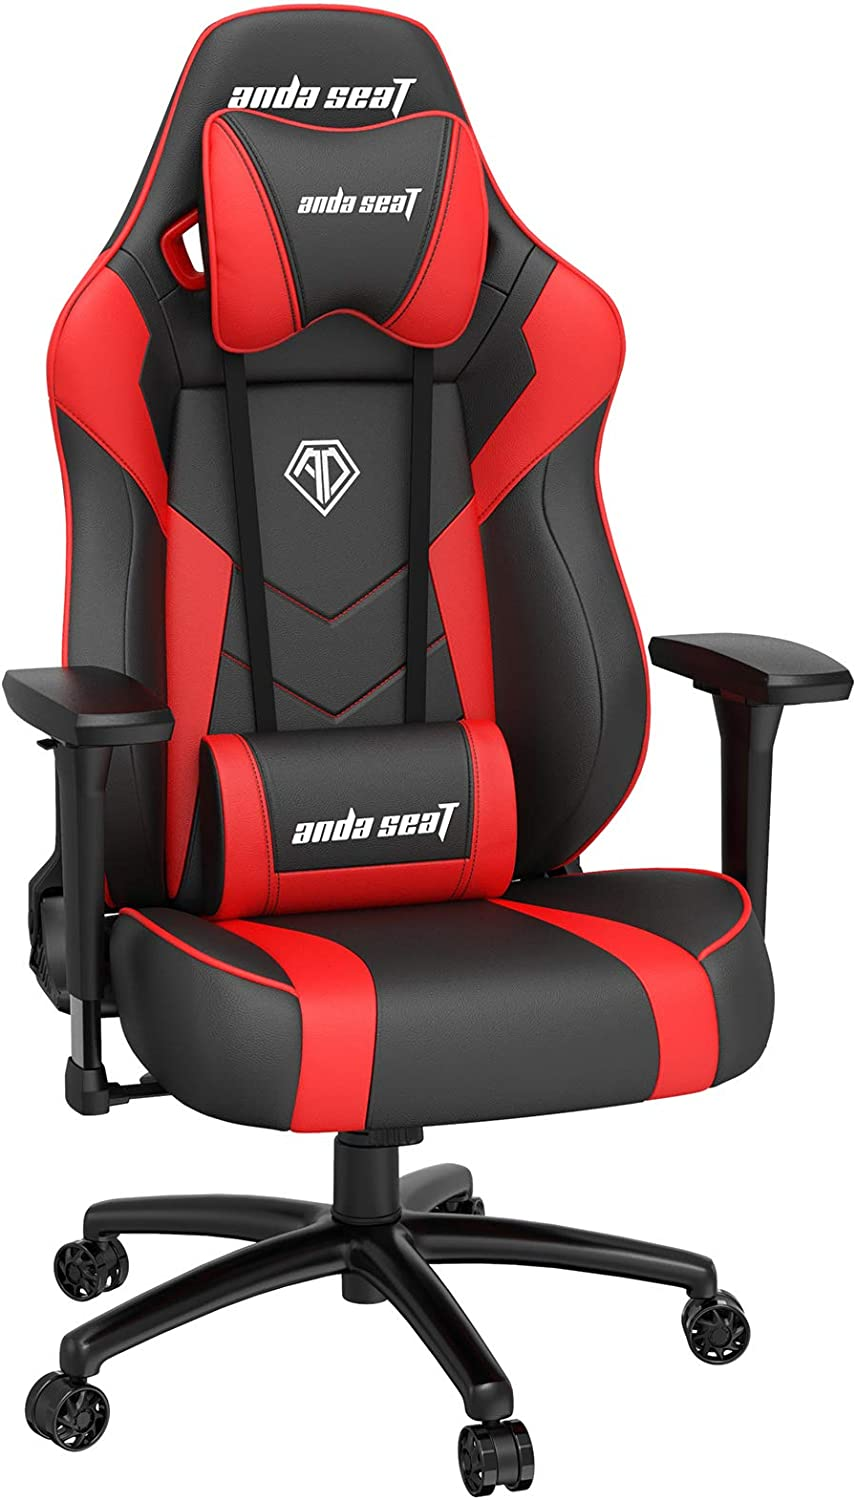 Gaming Chair, ANDASEAT Dark Demon Ergonomic Racing Computer Game Chair, Adjustable Armrest Swivel Rocker Recliner Office Chair with High-end Leather,Headrest and Lumbar Pillow E-Sports Chair (RED)